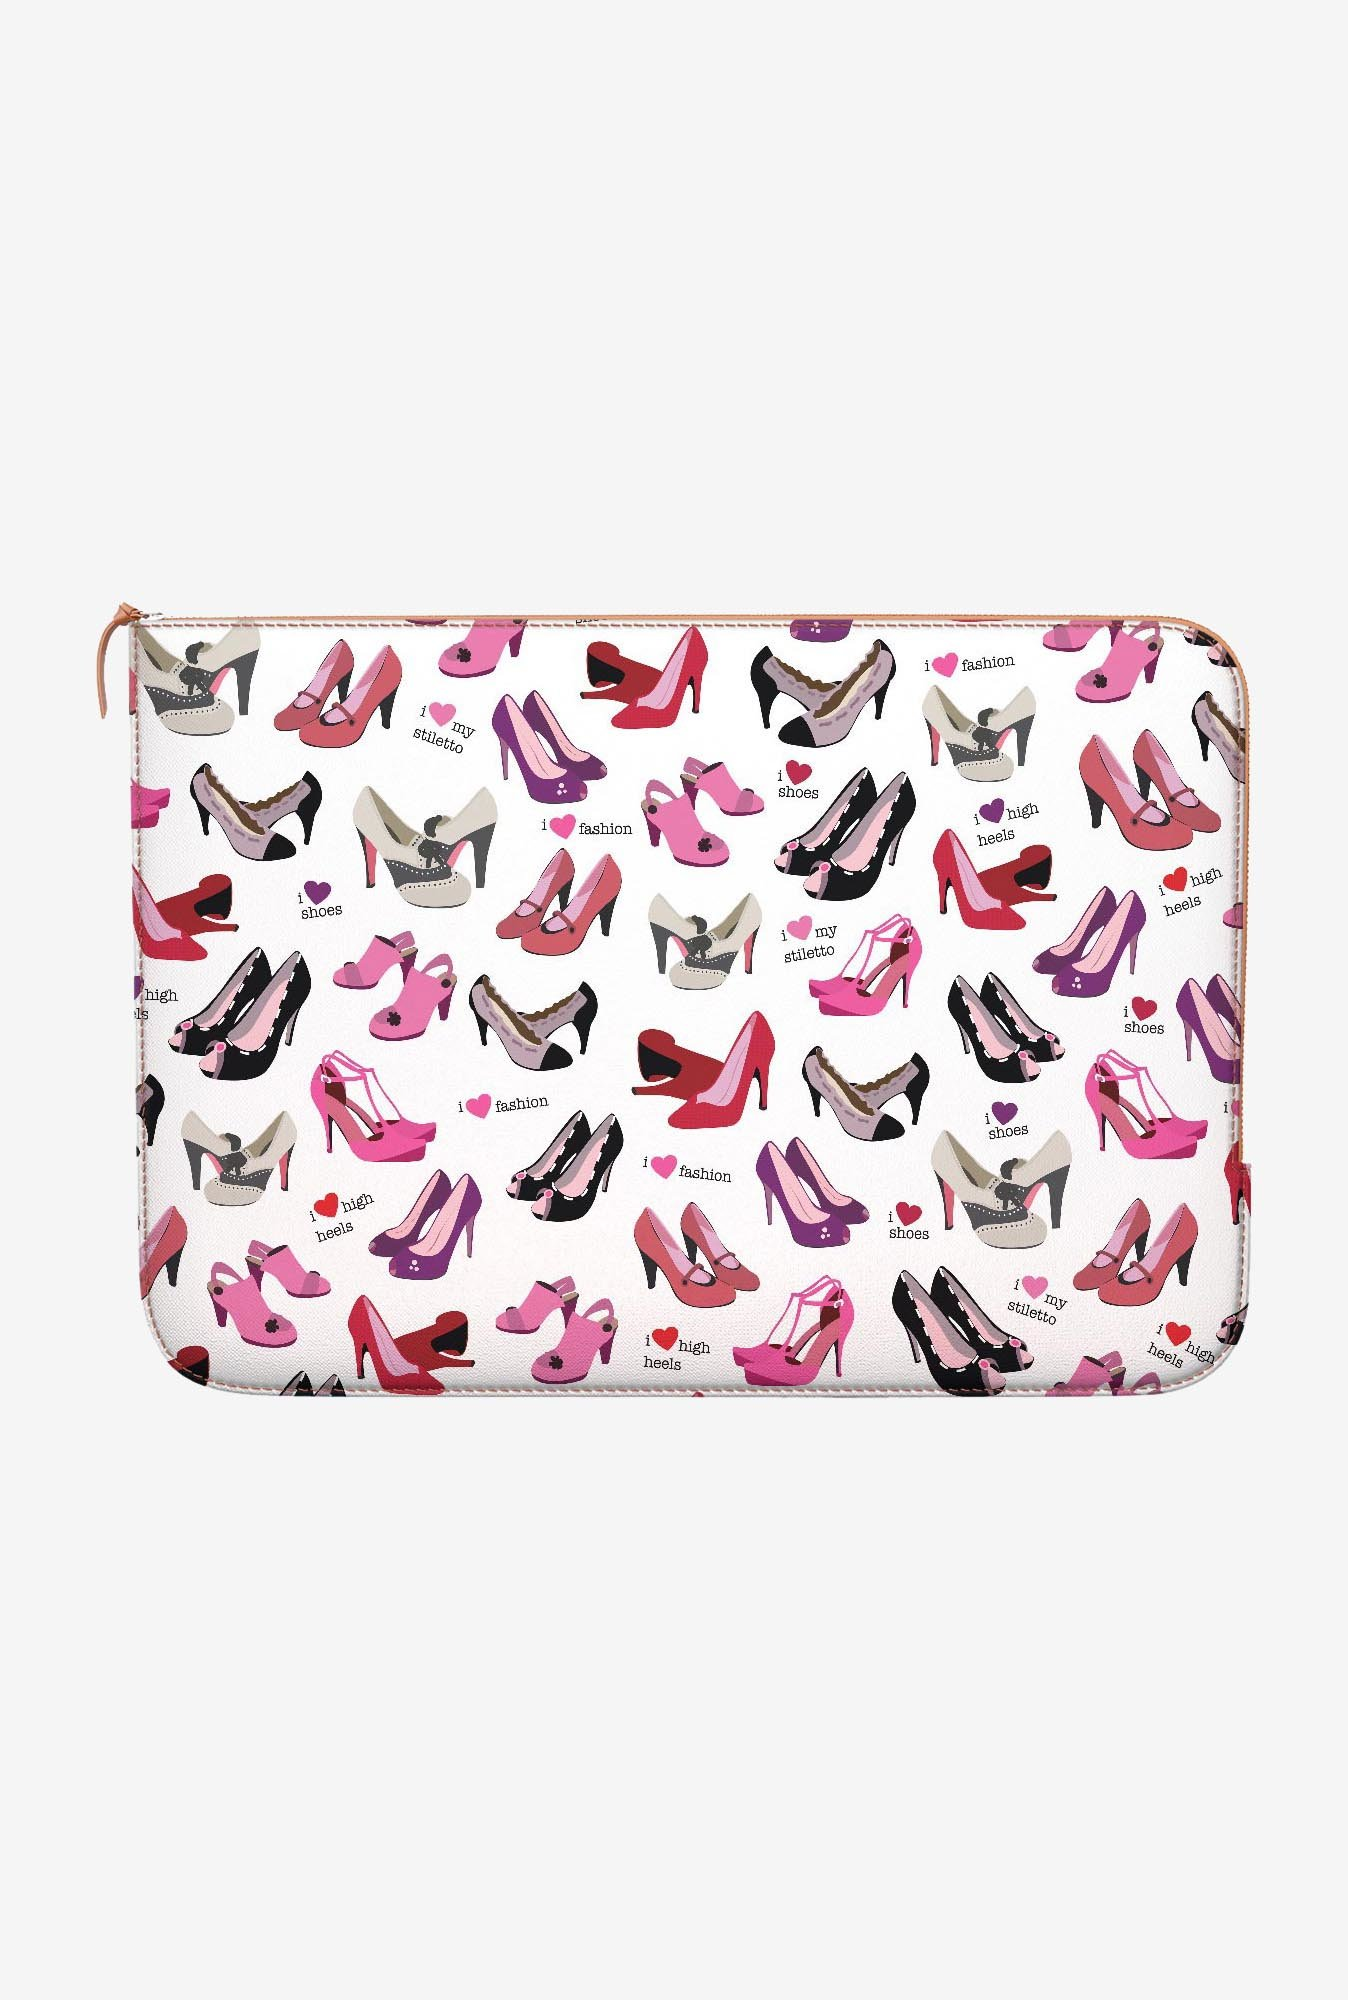 DailyObjects Shoes MacBook Pro 15 Zippered Sleeve